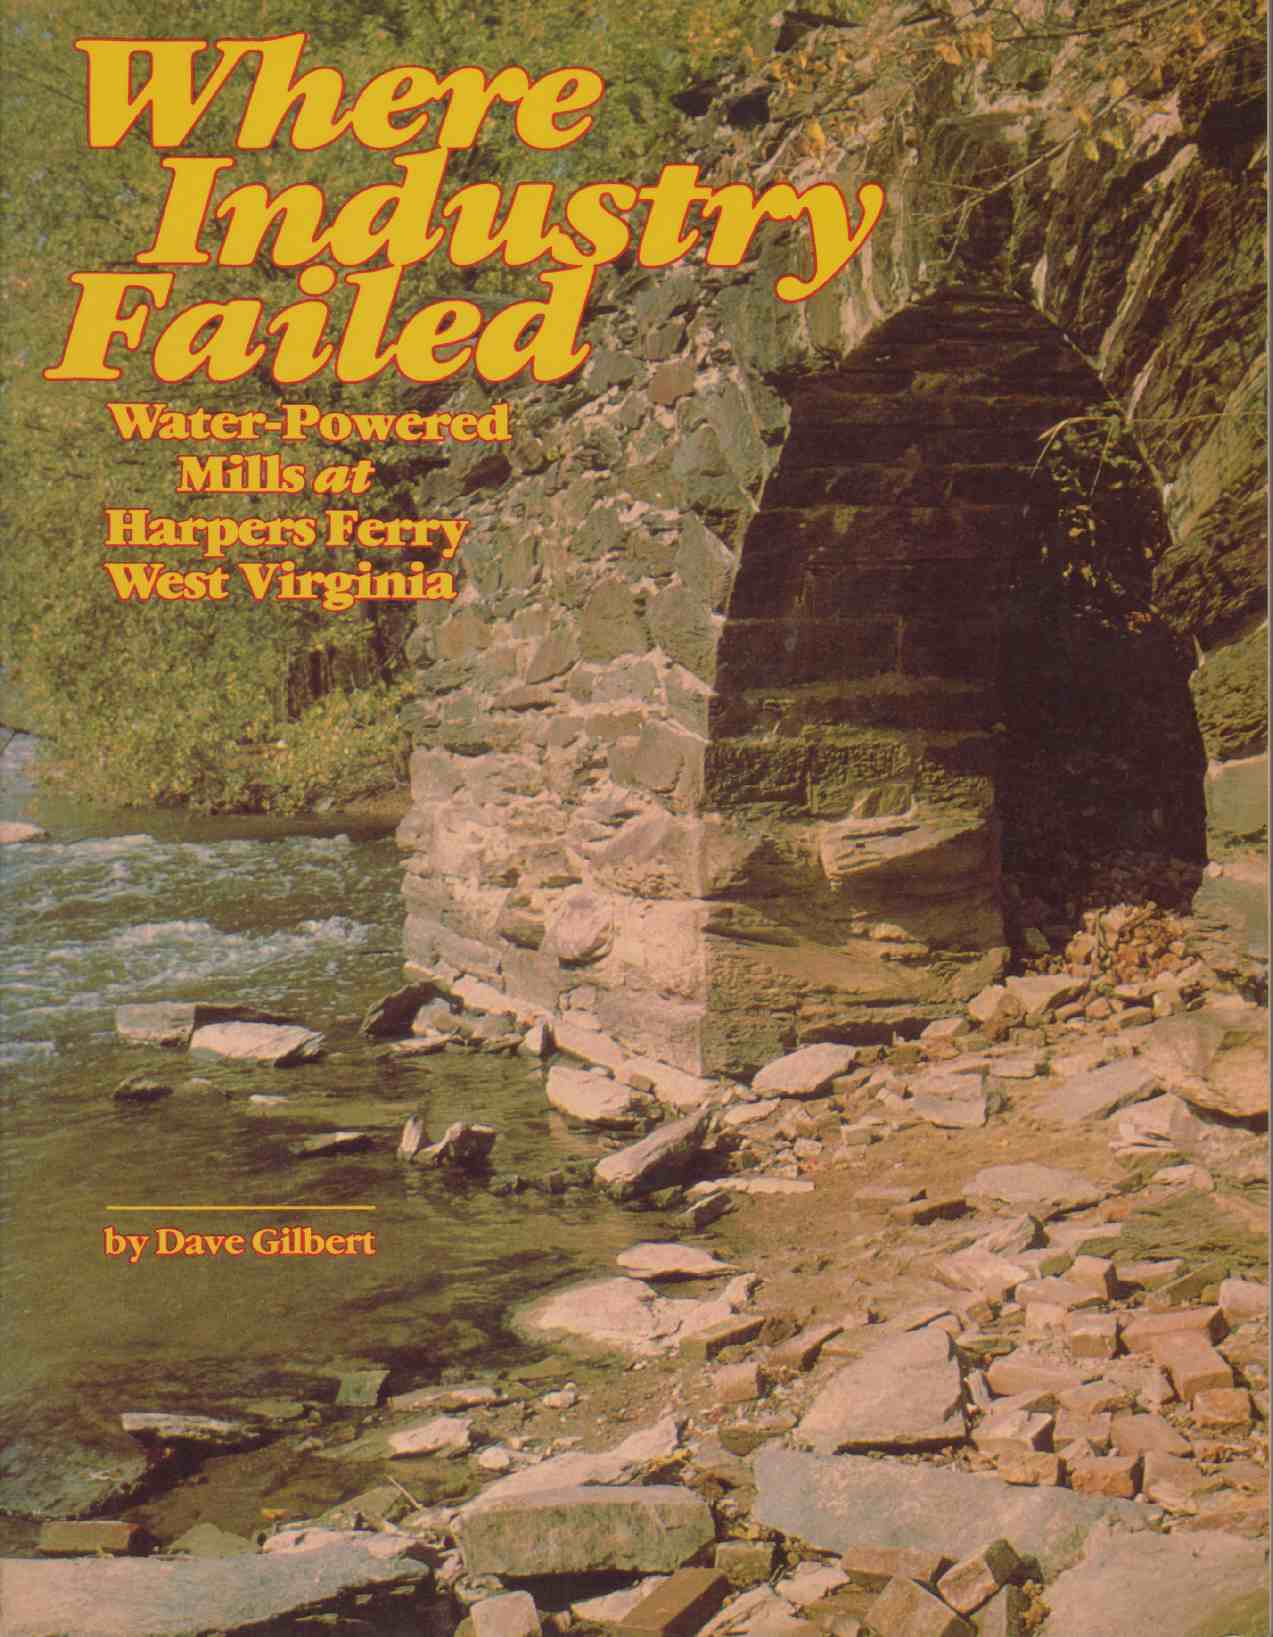 Image for WHERE INDUSTRY FAILED Water-Powered Mills At Harpers Ferry, West Virginia